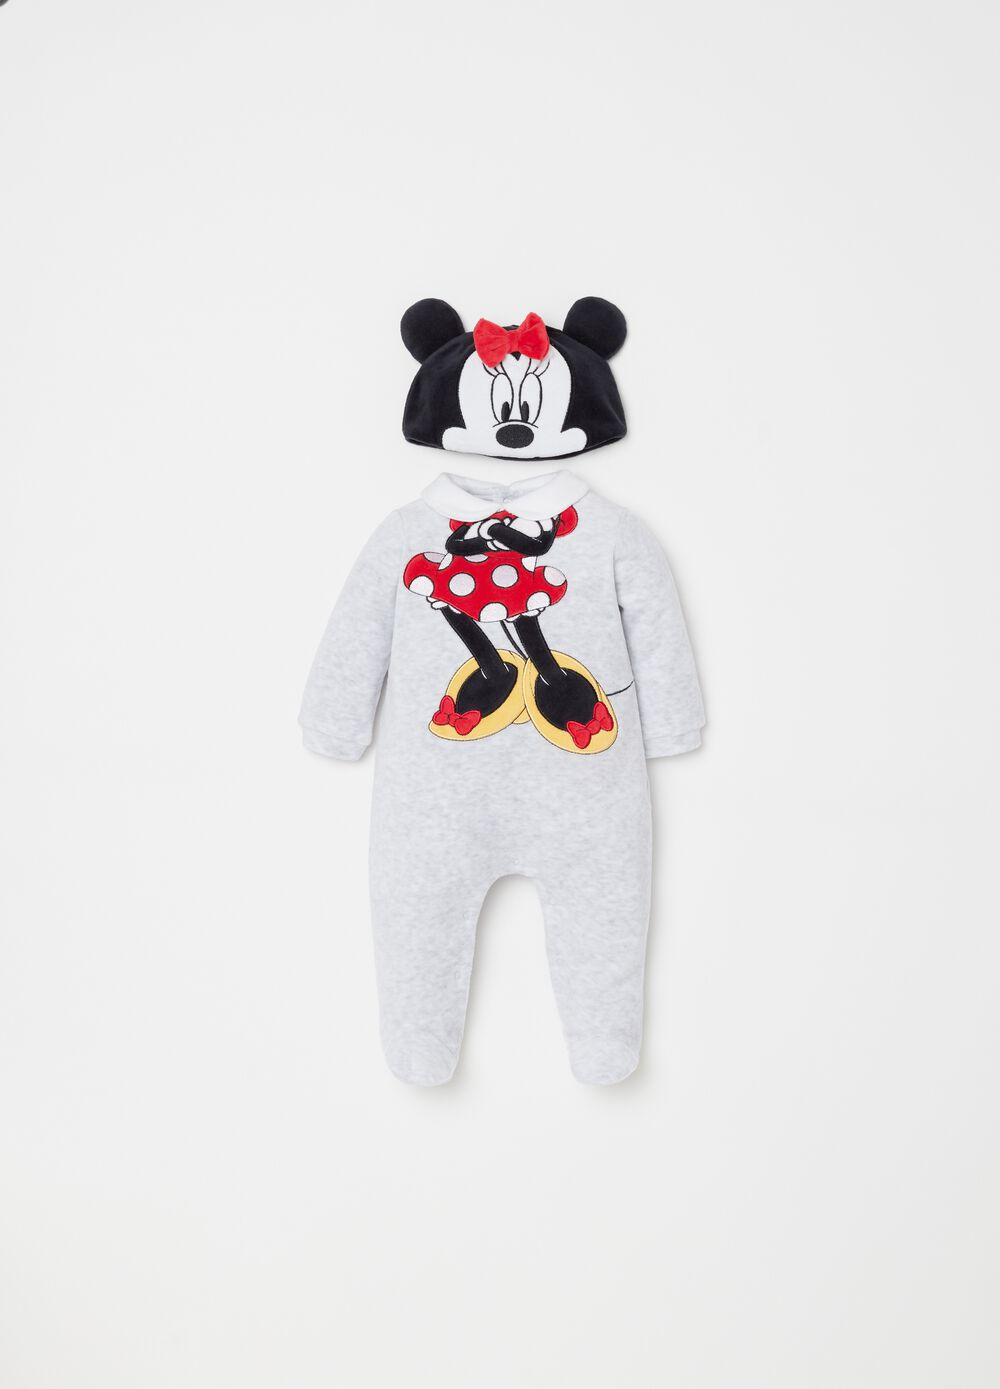 Disney Minnie Mouse hat and onesie set